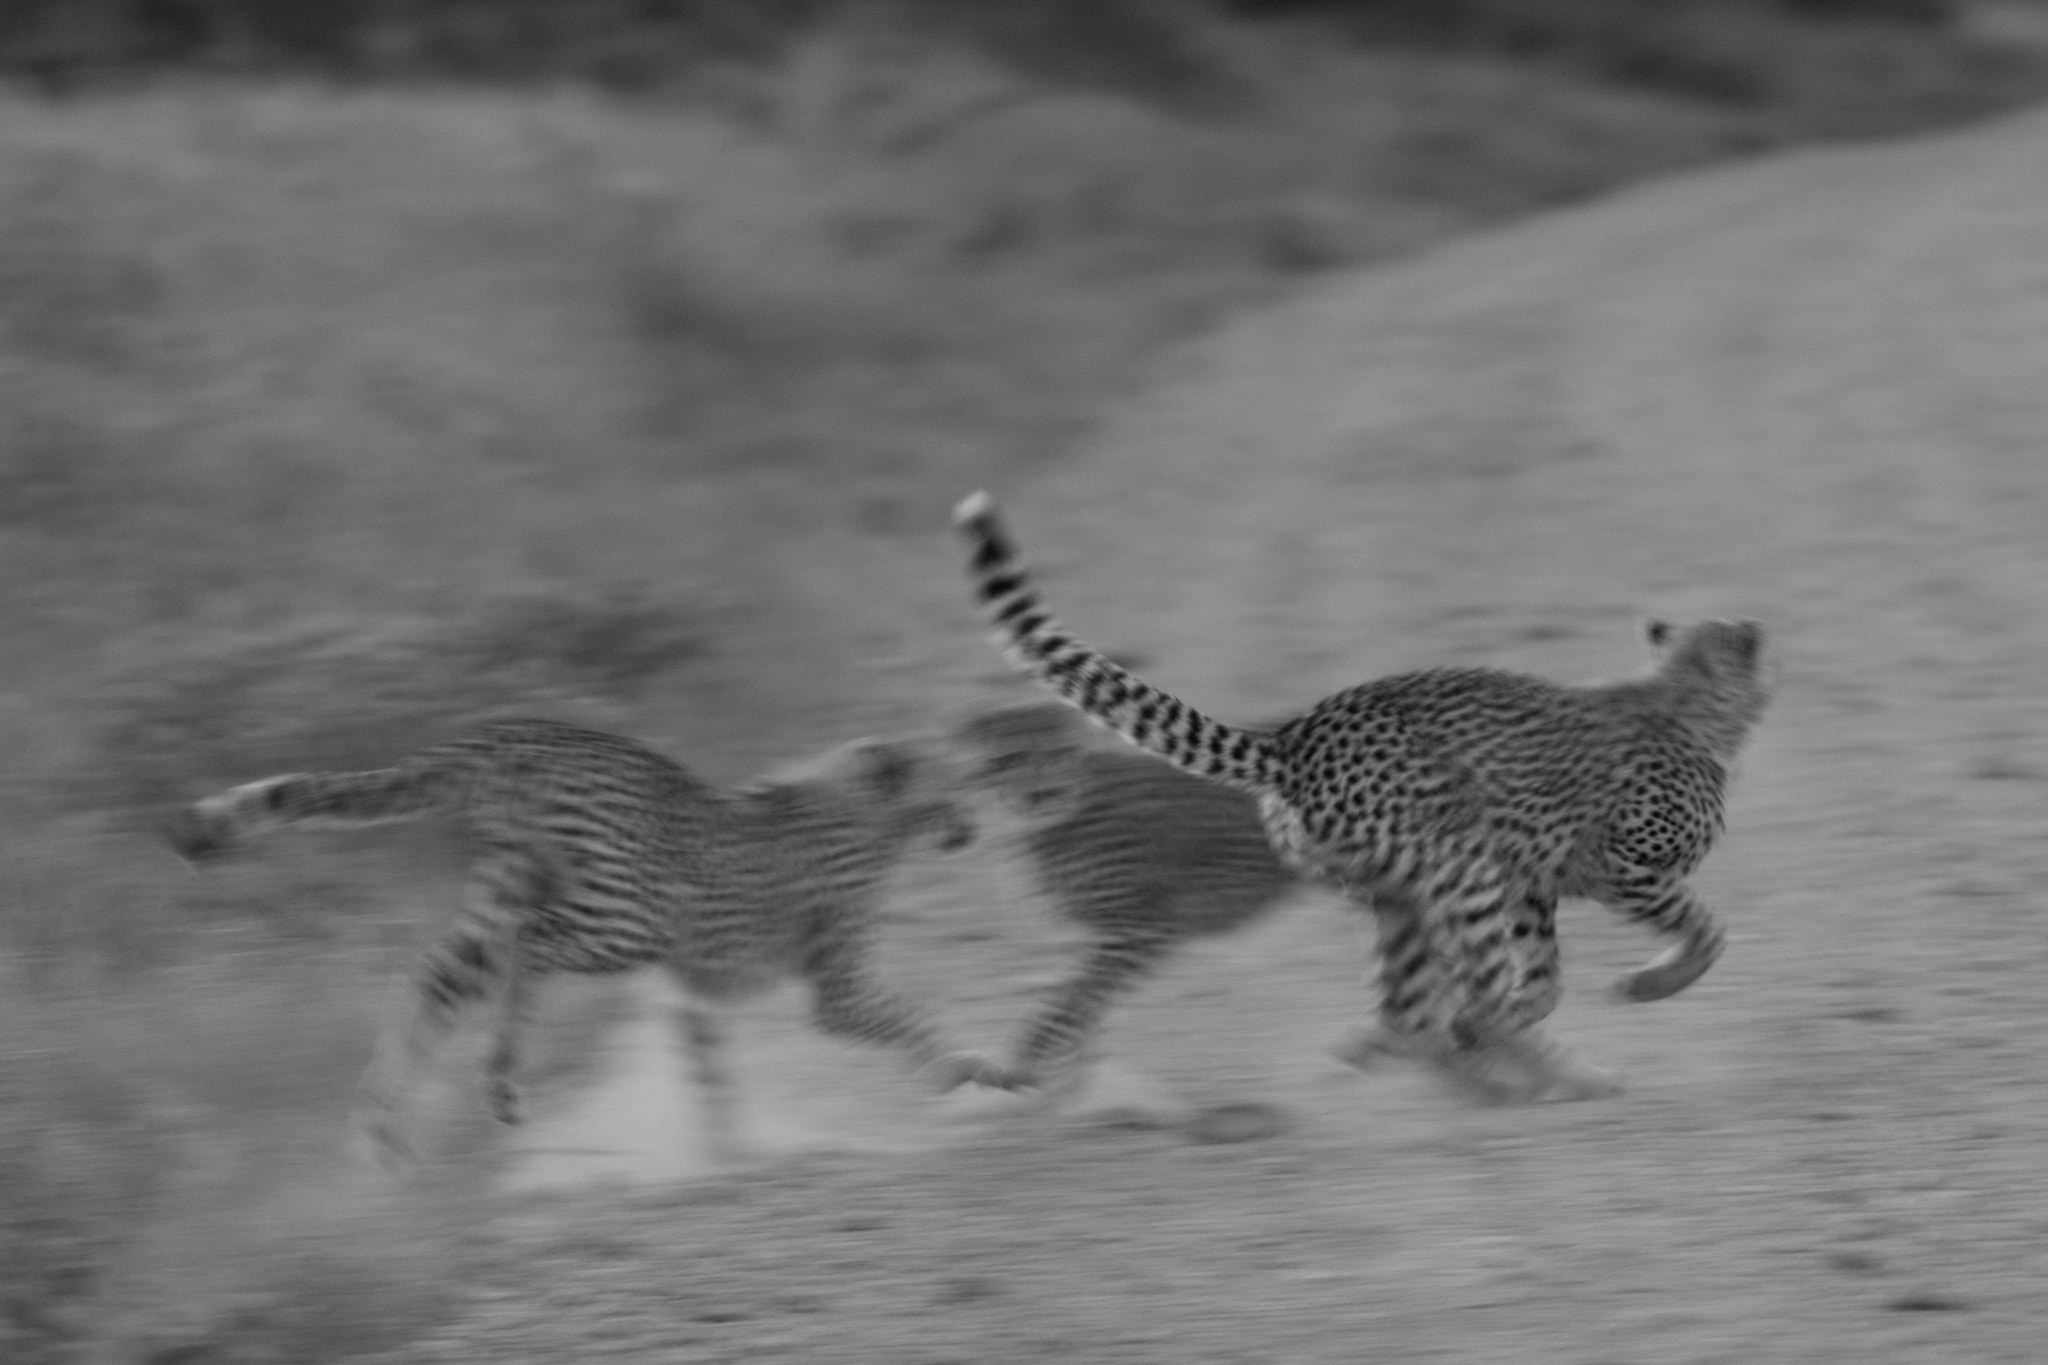 Photograph Cheetah Cubs Playing by Seb Loram on 500px